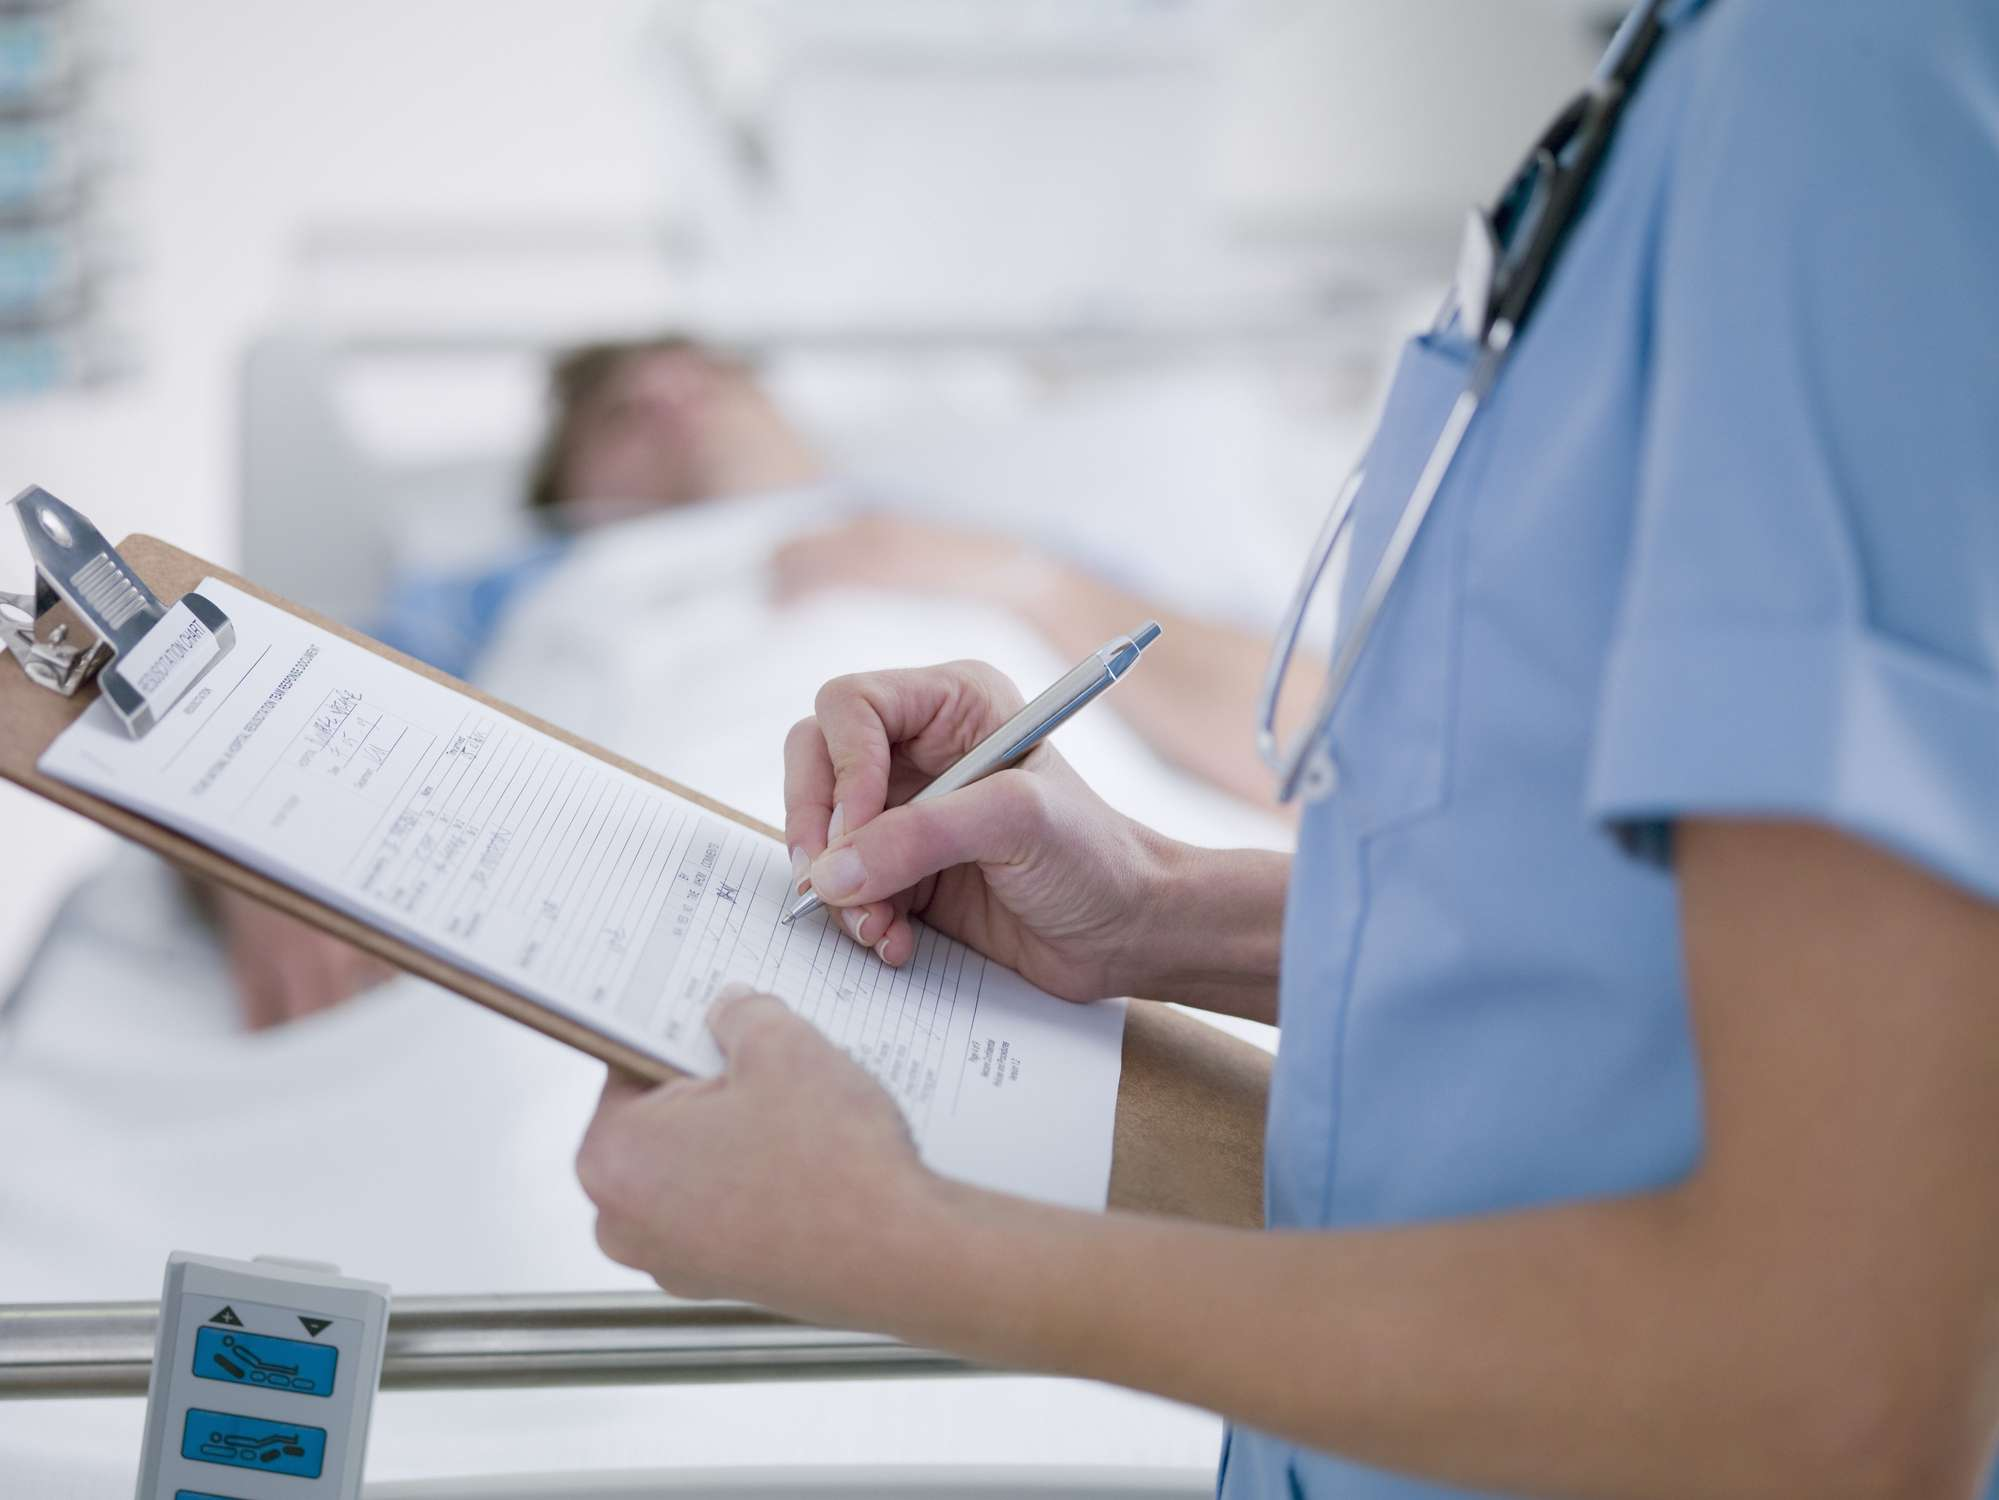 Nurse writing on clipboard and patient with bacteremia in hospital bed in the background